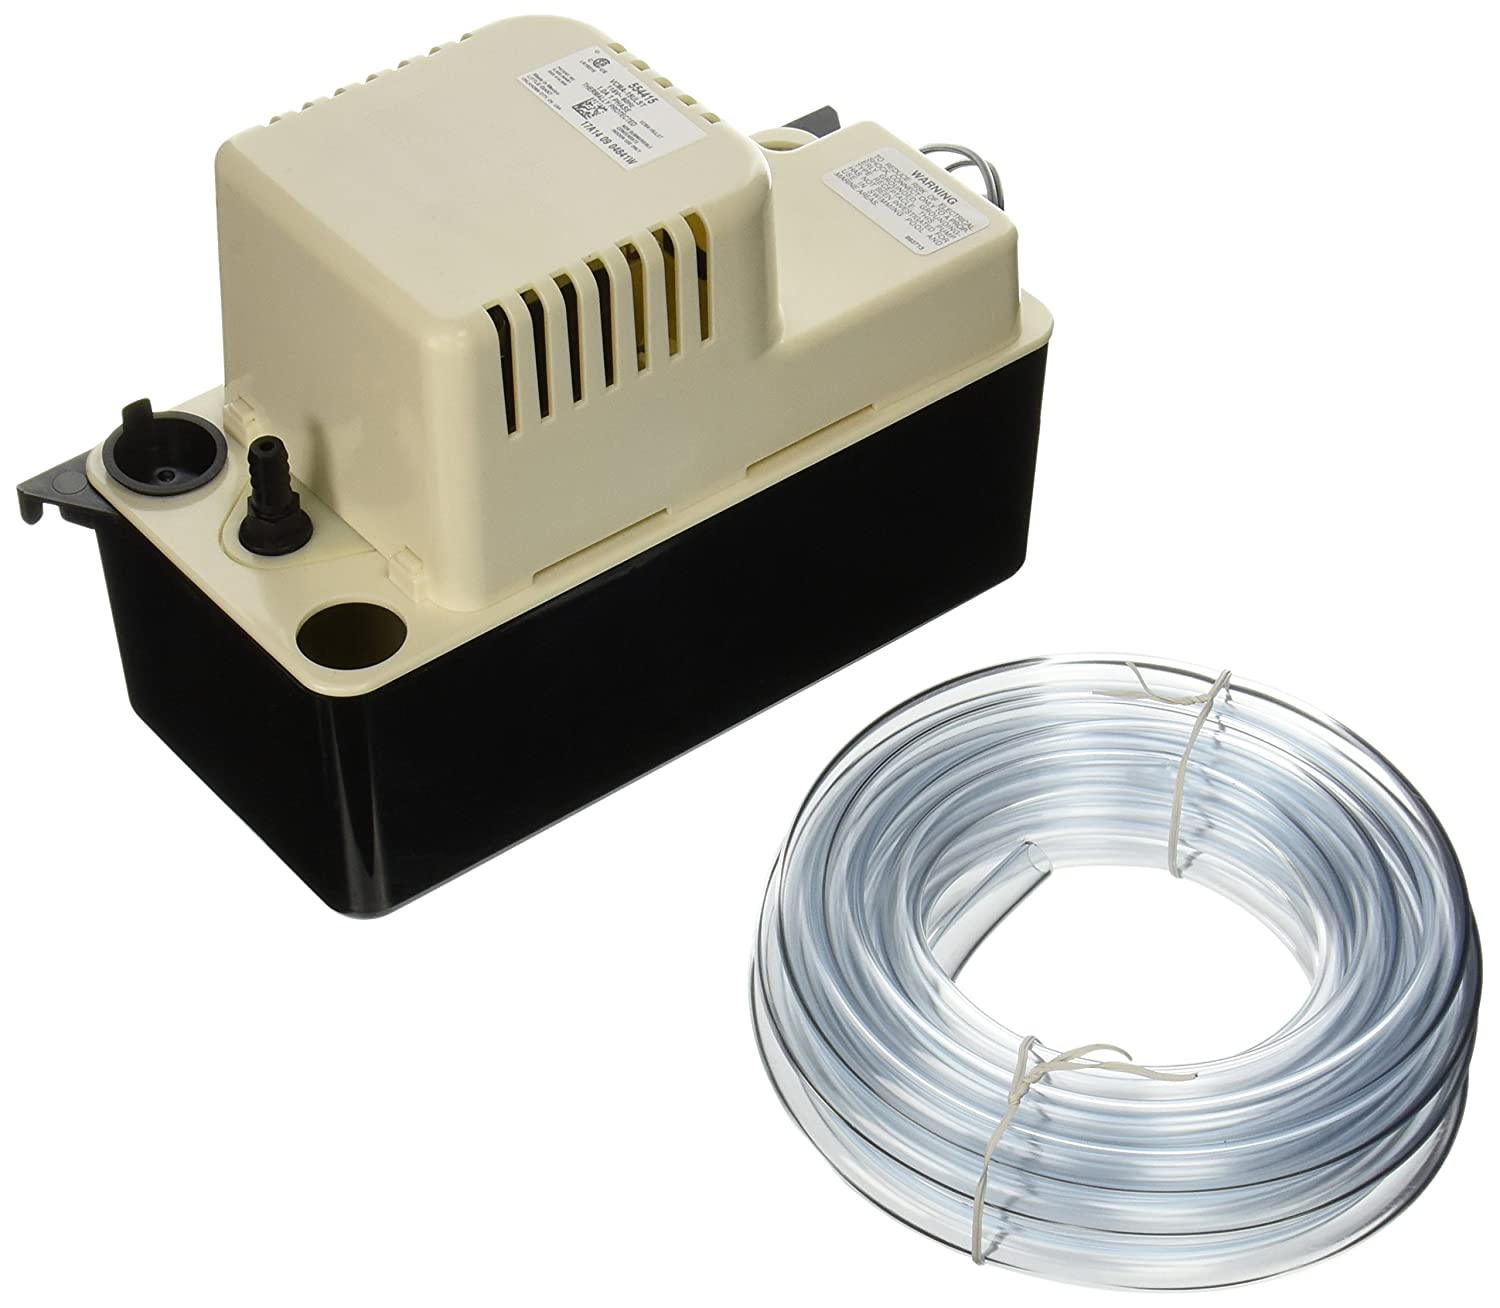 B00BYFQQ8U Little Giant 554415 65 GPH 115V Automatic Condensate Removal Pump with Safety Switch and 20ft. Tubing 81dp6zag2BNL